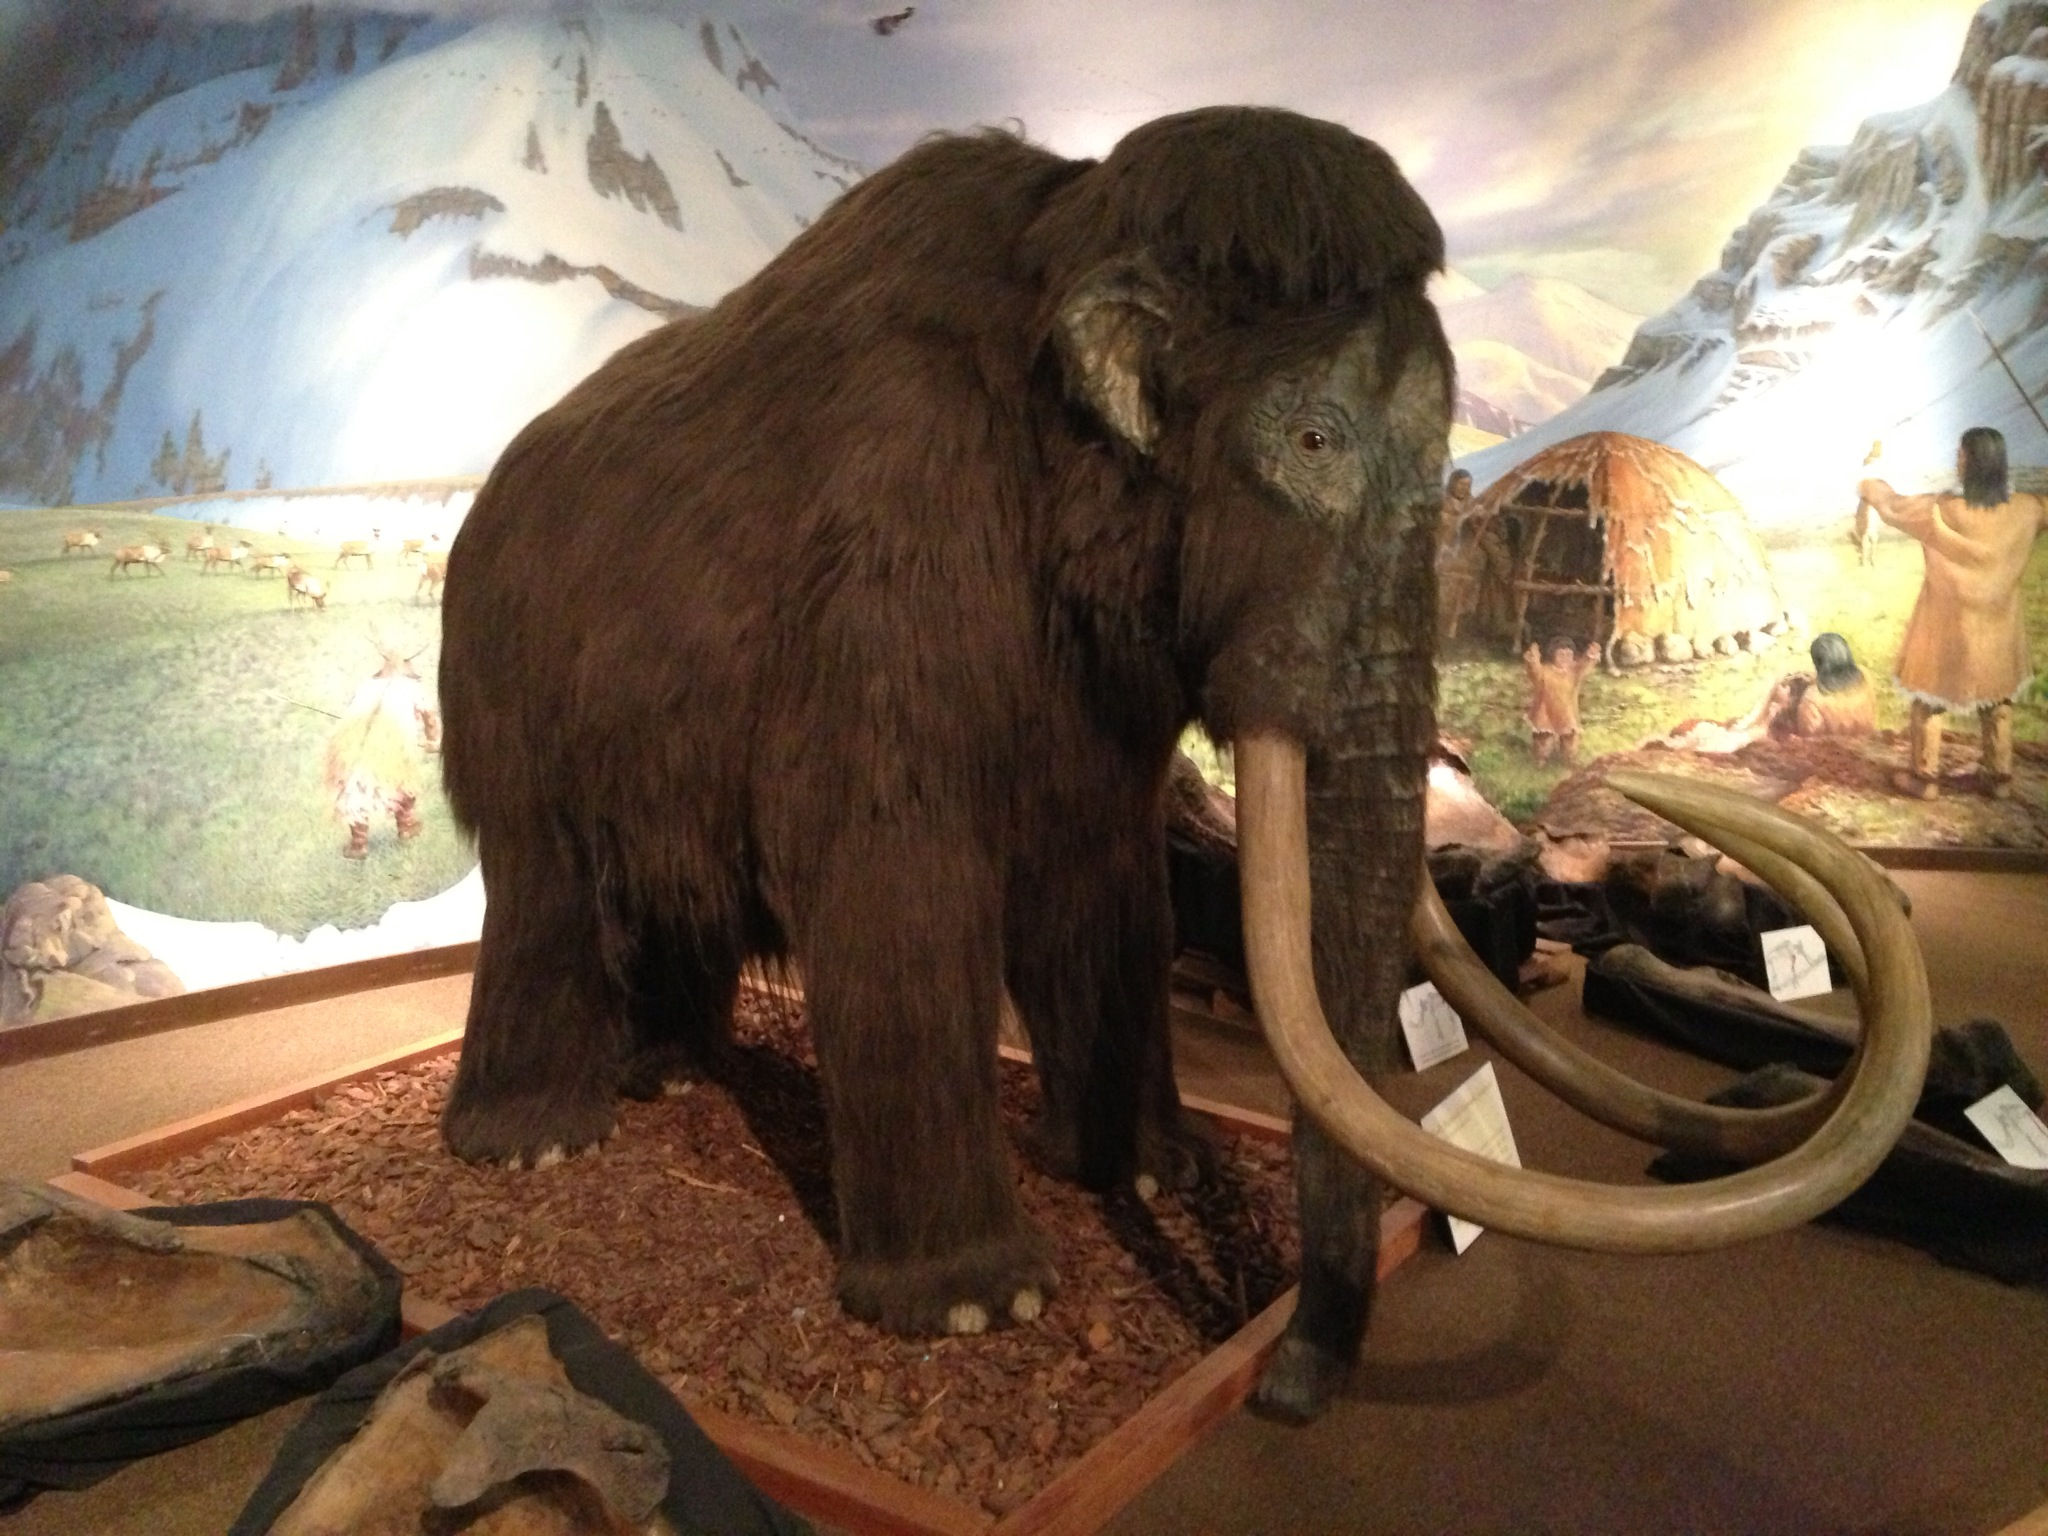 Mammoth animatronic. He sort of just jerked his head at odd intervals.